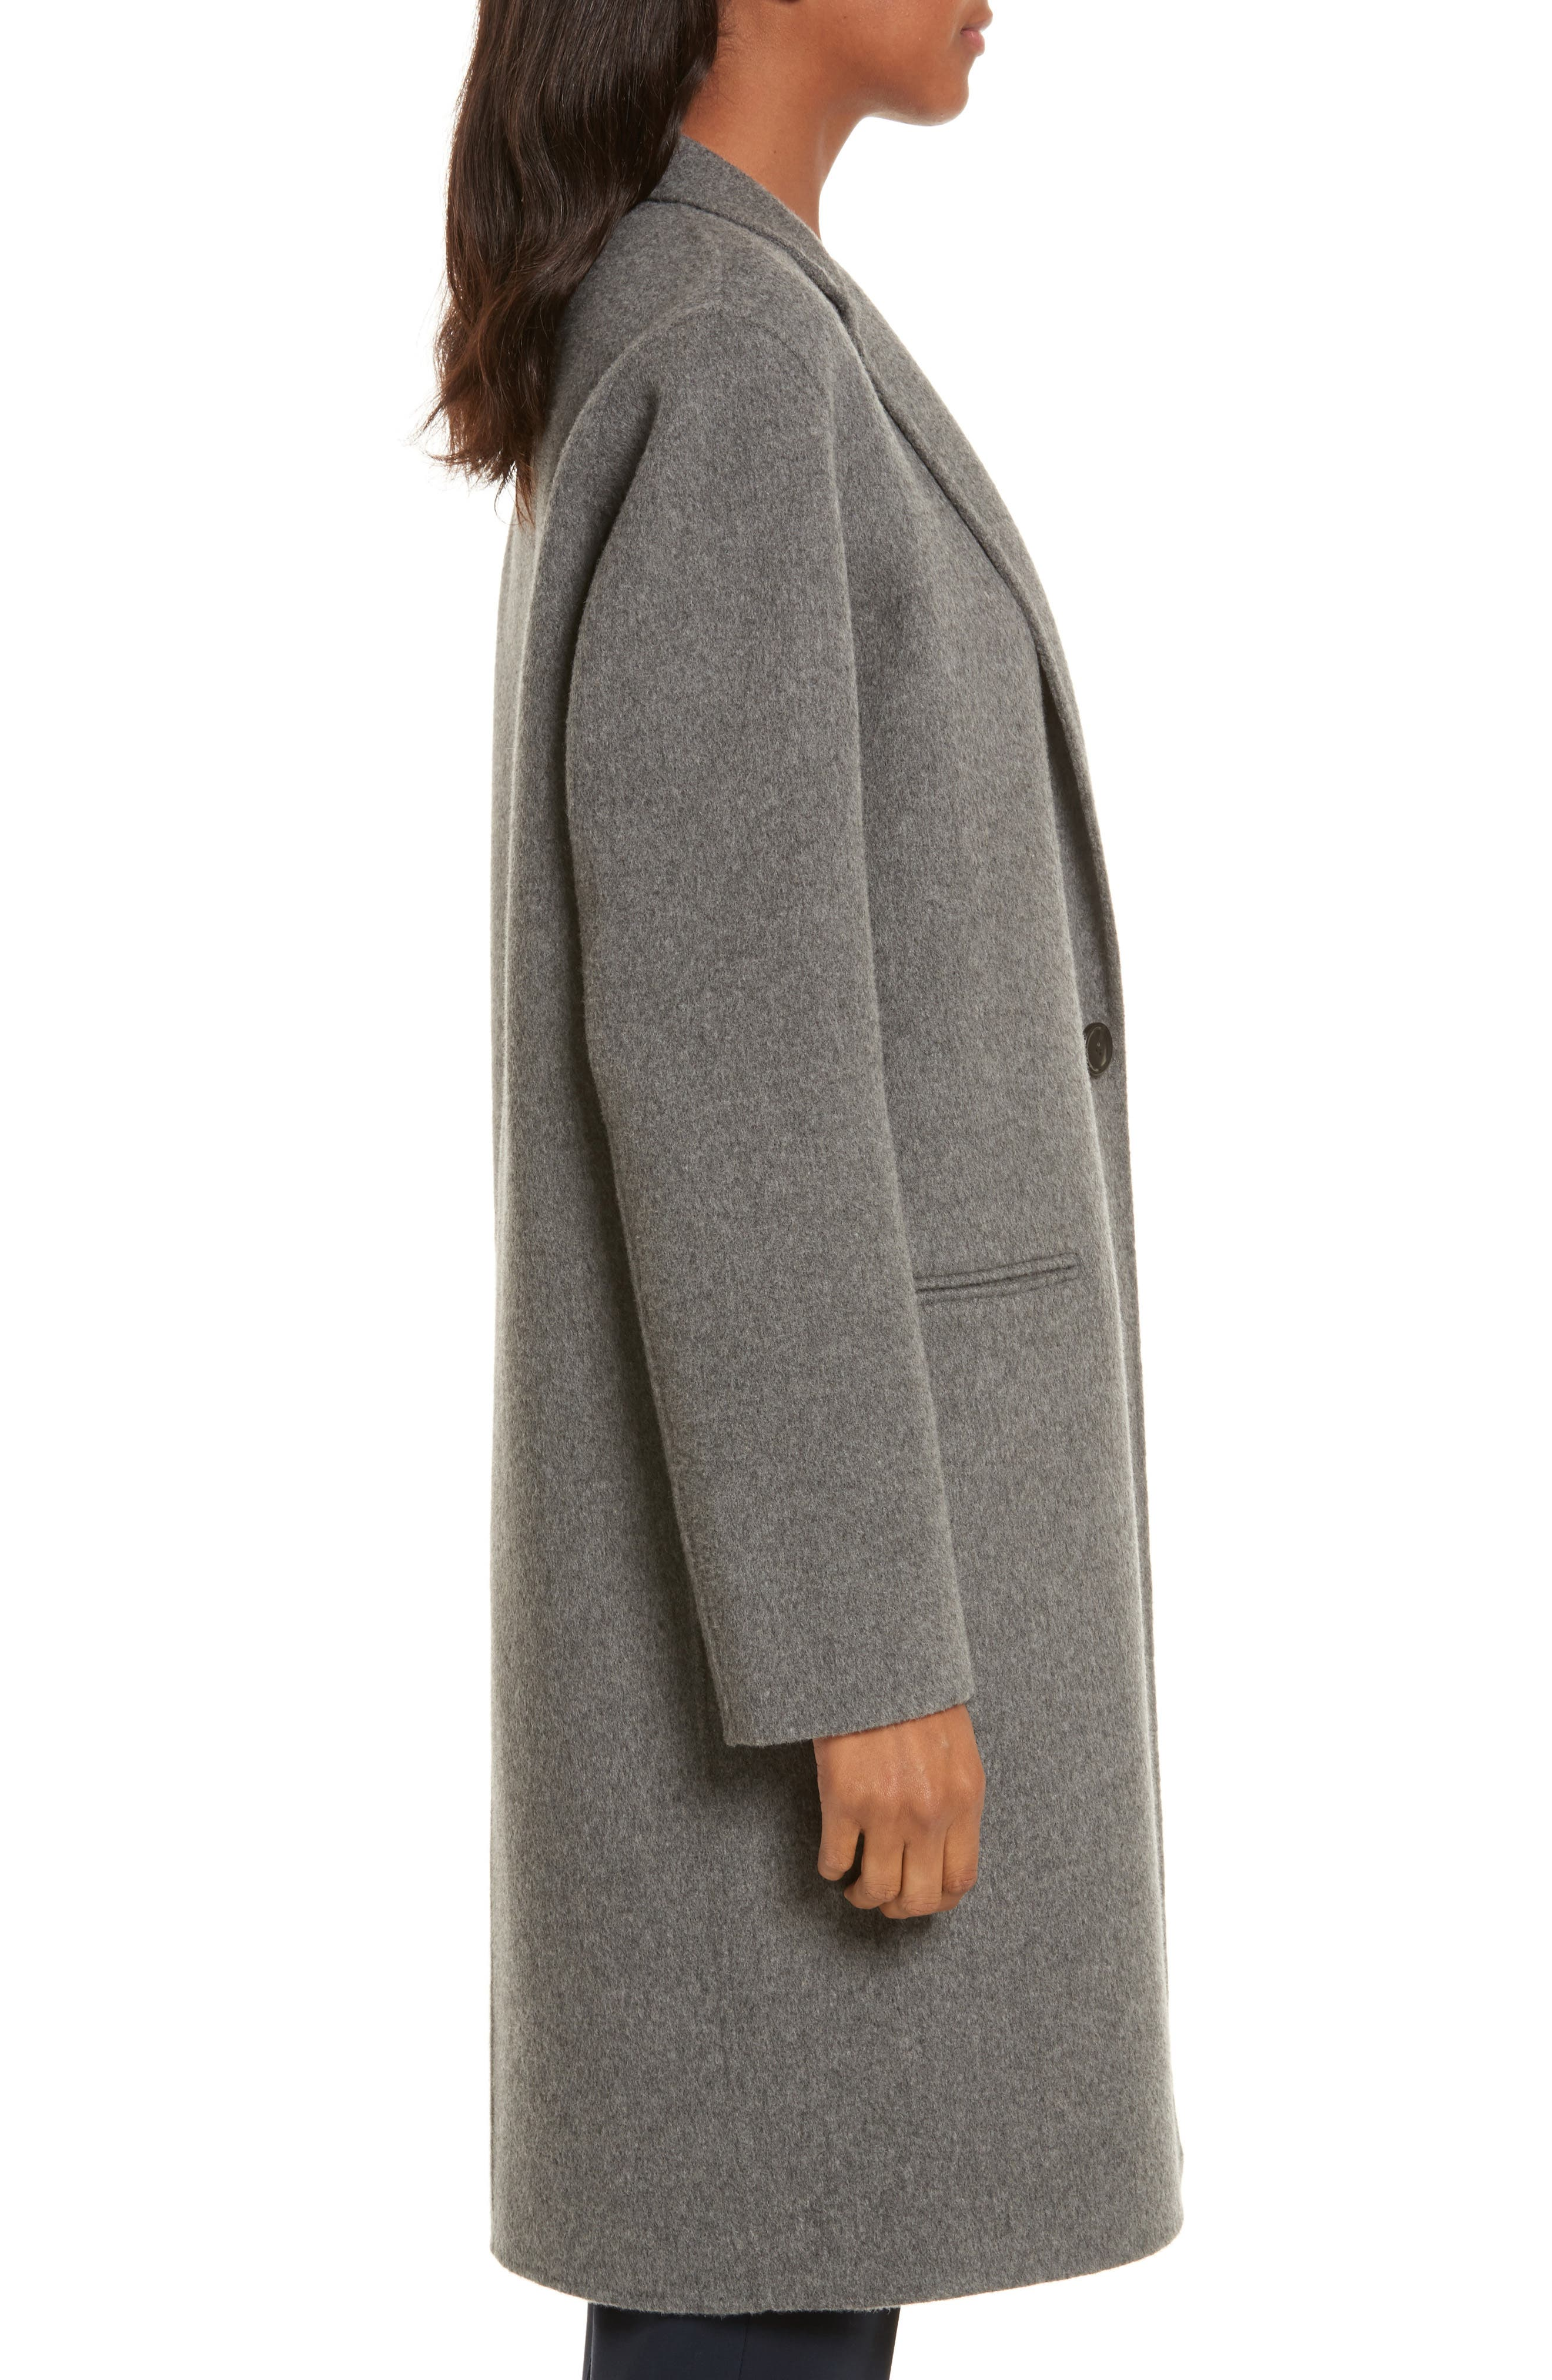 New Divide Wool & Cashmere Coat,                             Alternate thumbnail 3, color,                             021